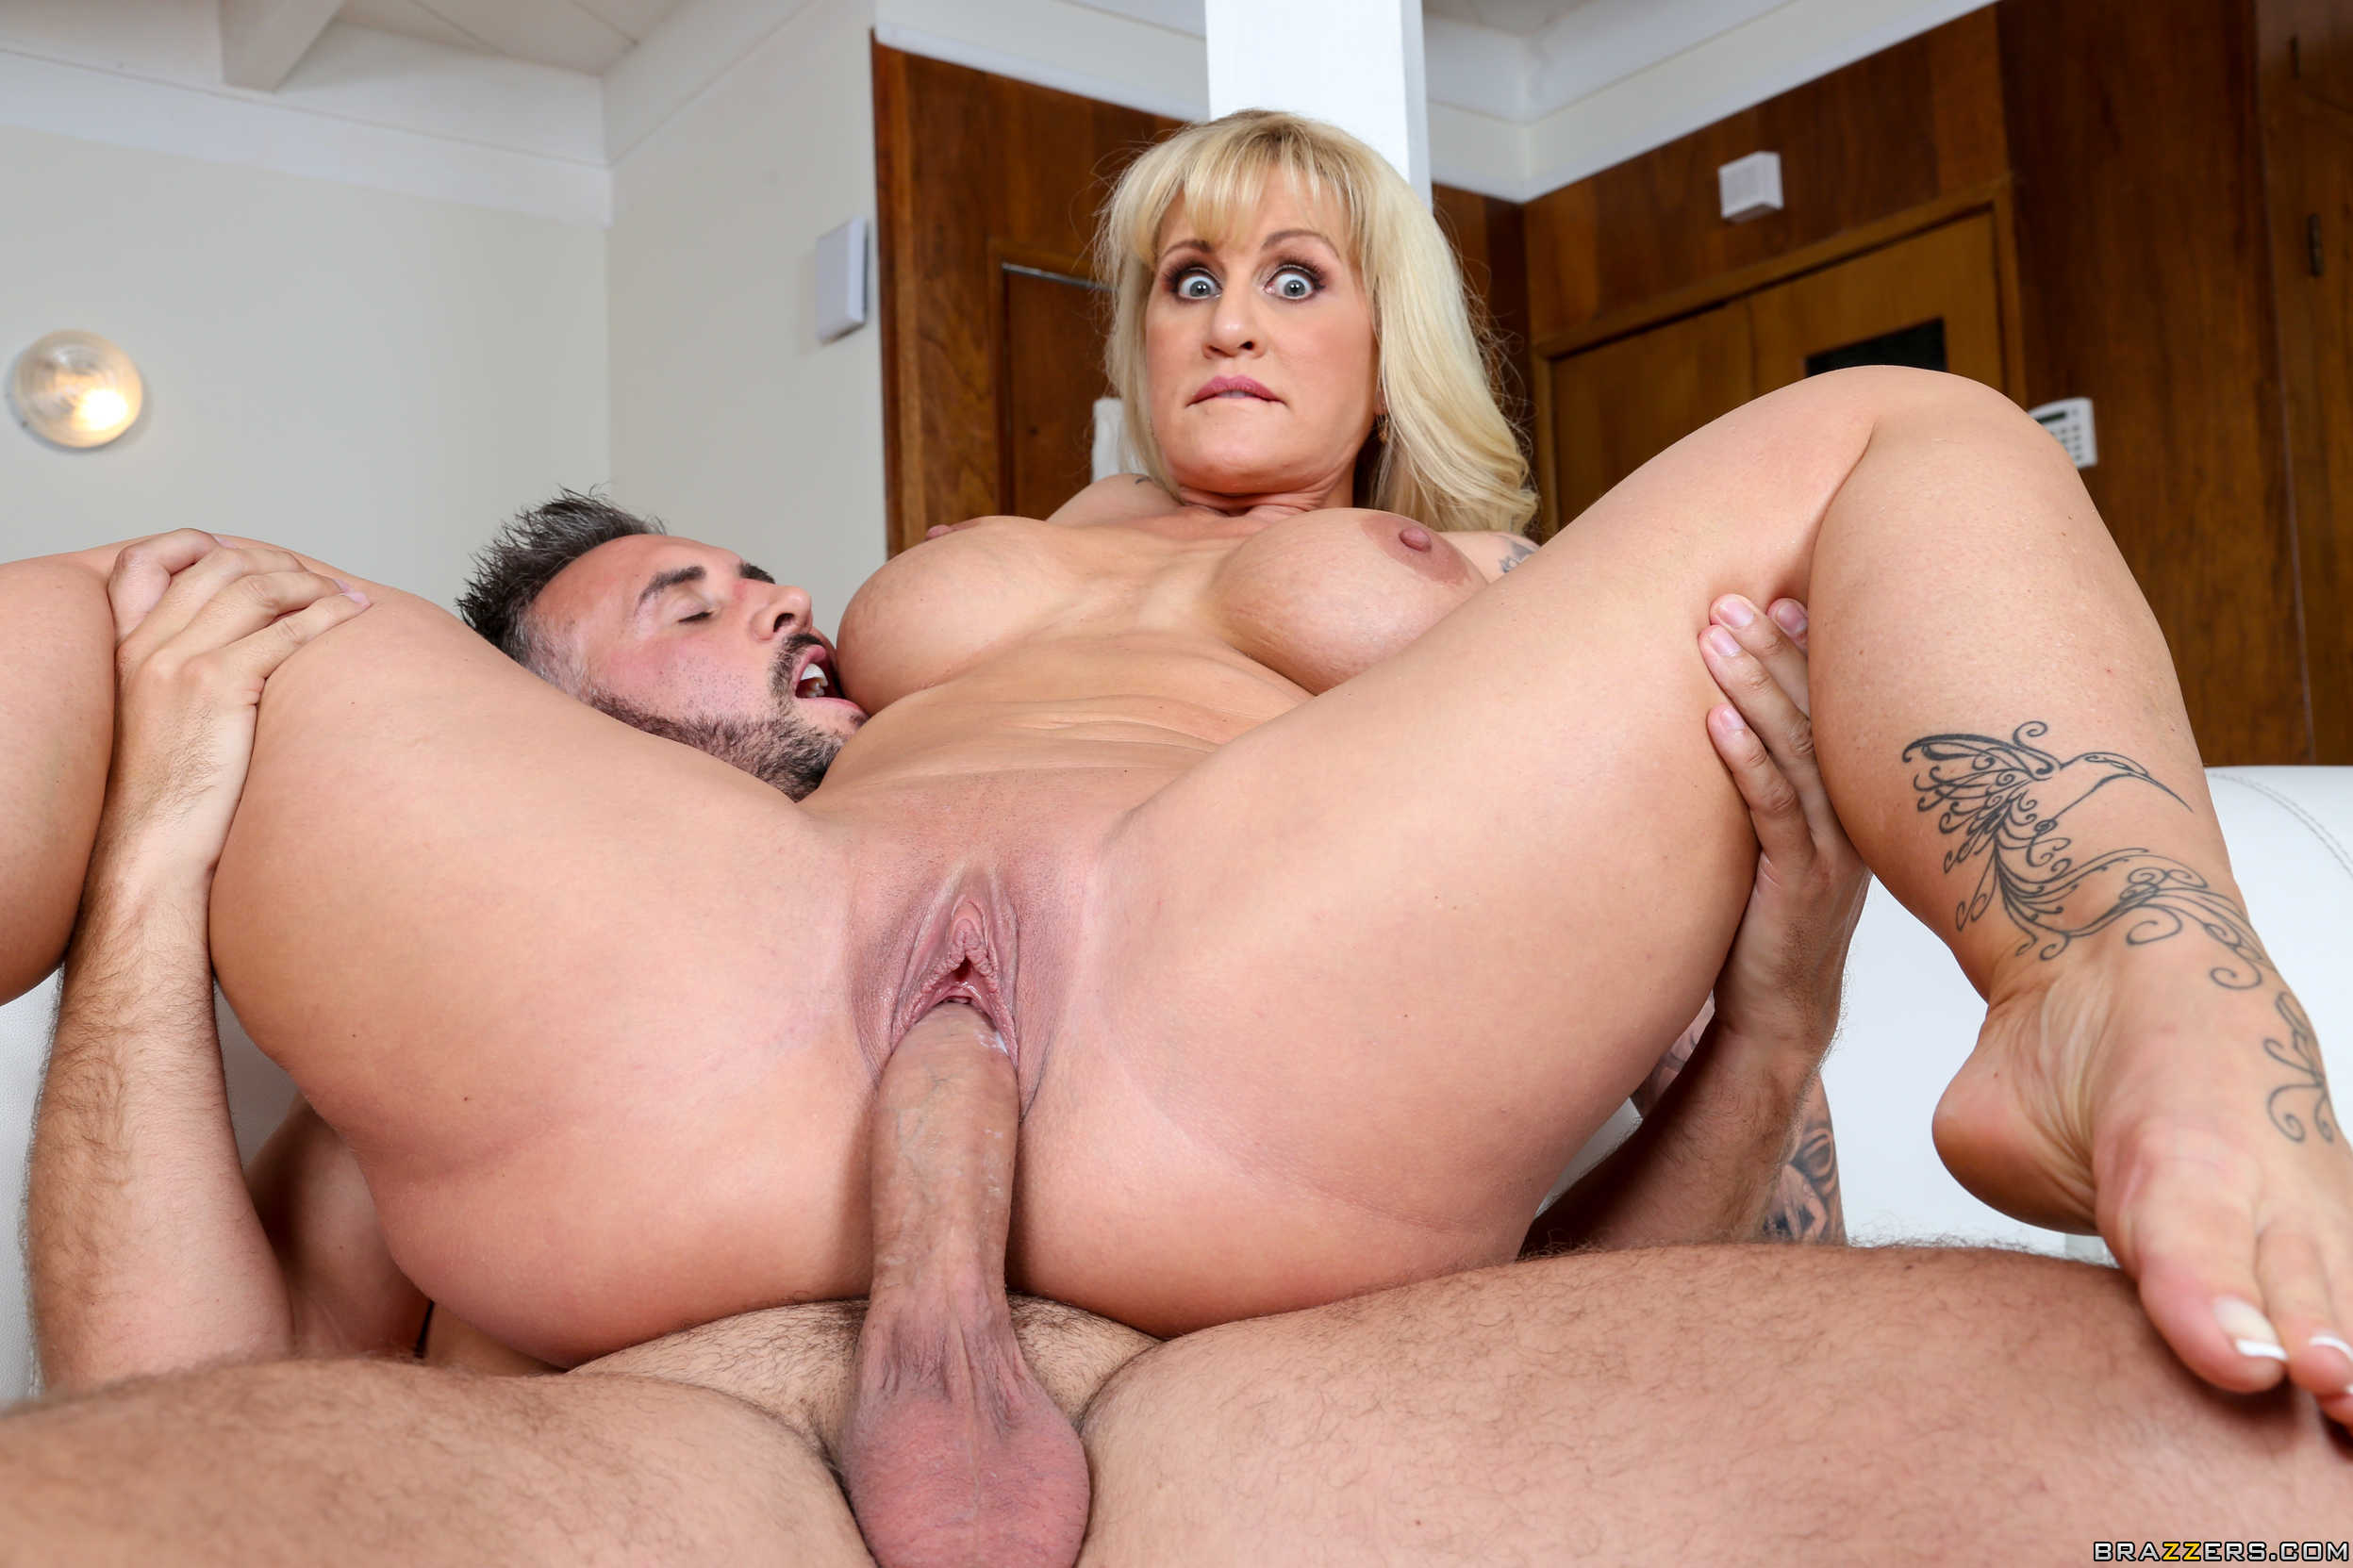 Busty wild blonde jarushka ross meet tourist crew by chance - 2 part 5